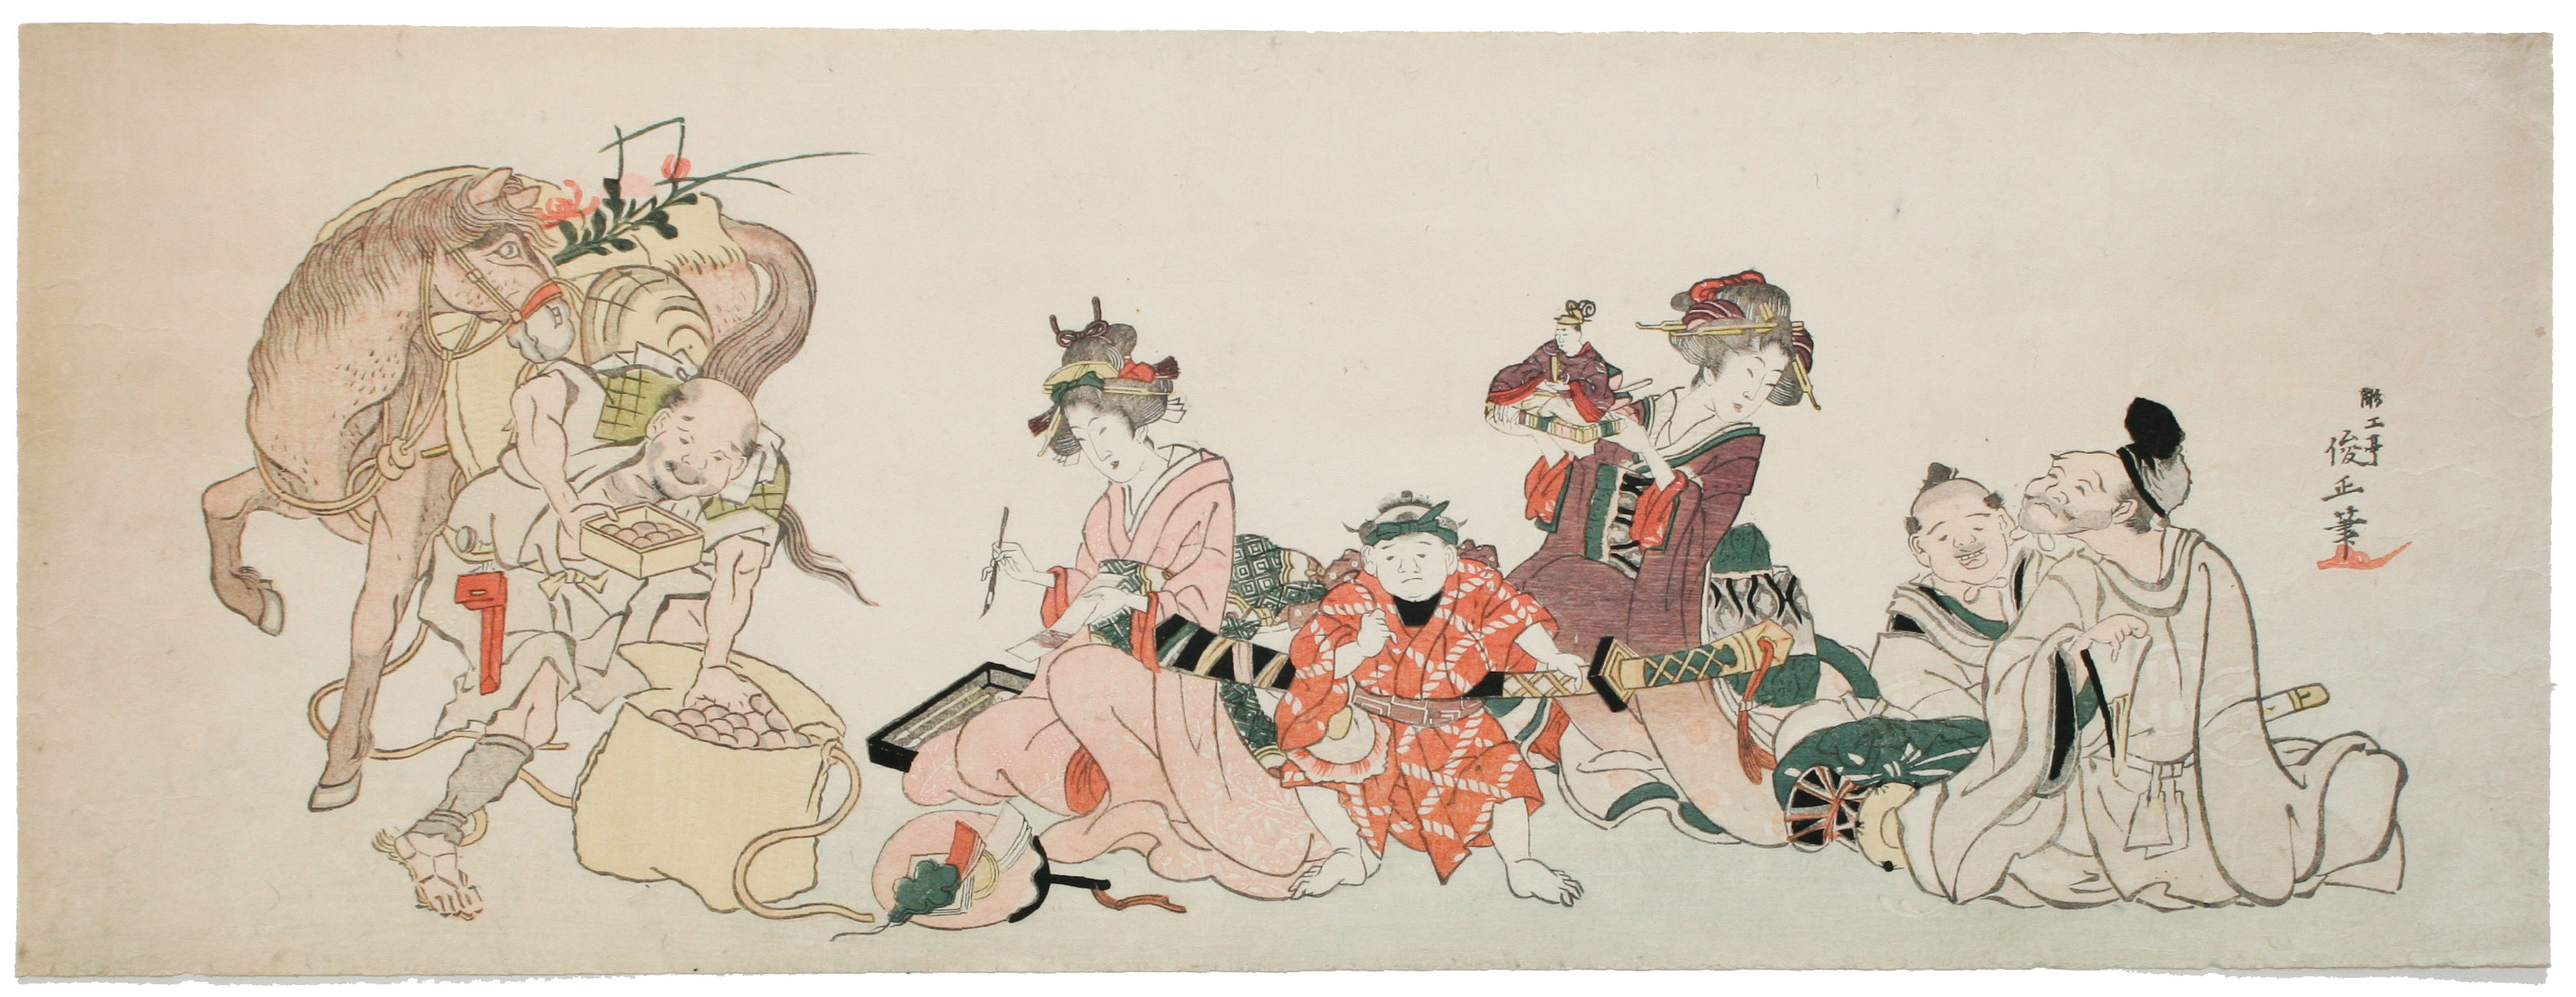 Chokotei TOSHIMASA - Original Japanese Woodblock Print - Five Great Festivals of the Year